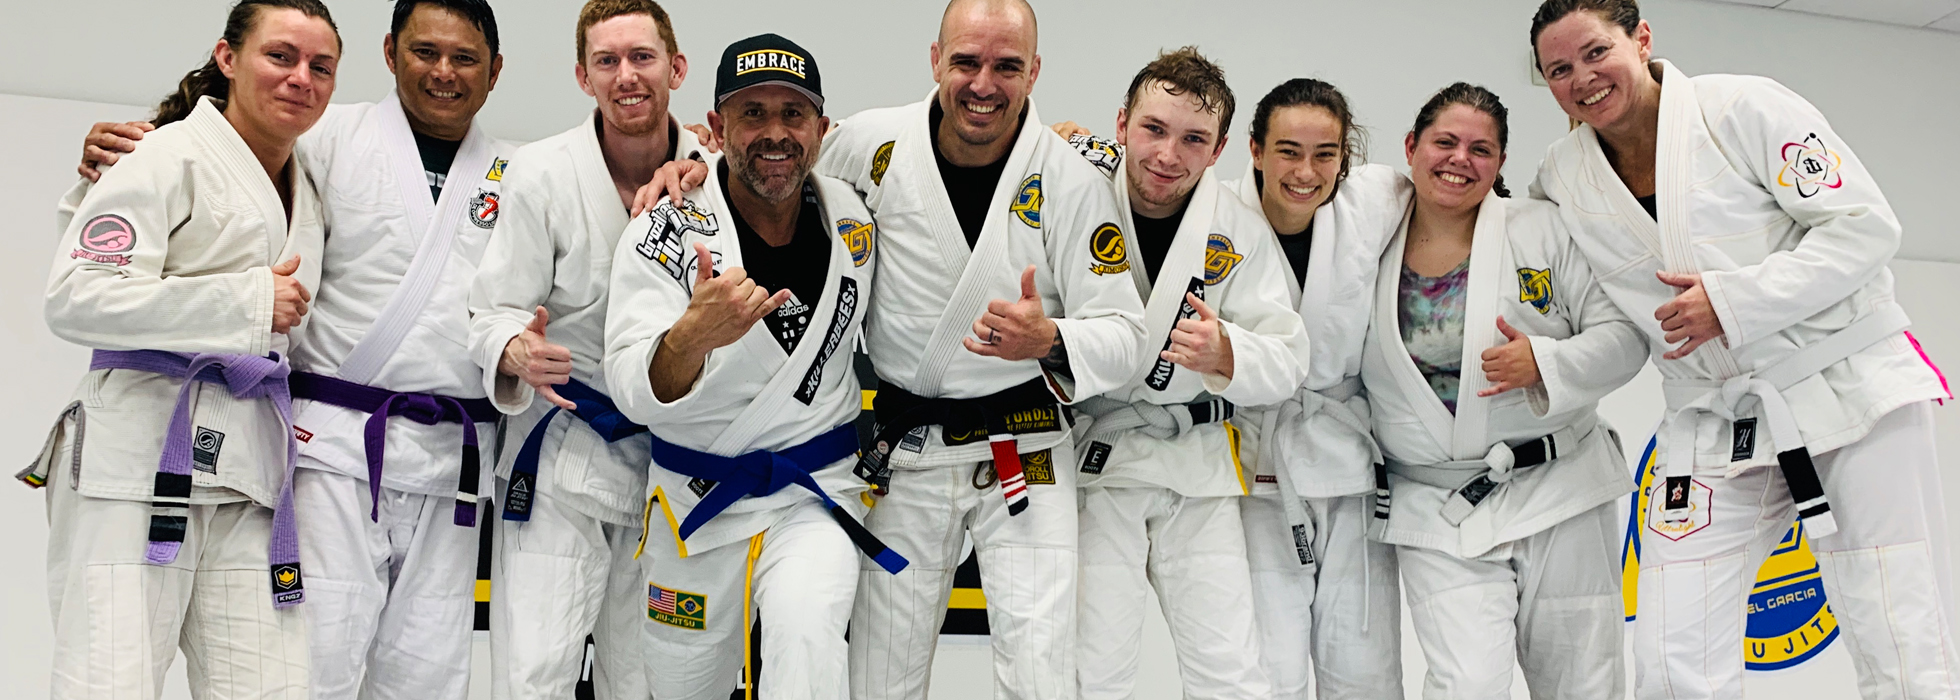 Adult Brazilian Jiu Jitsu Training in Wake Forest NC, Adult Brazilian Jiu Jitsu Training near Raleigh NC